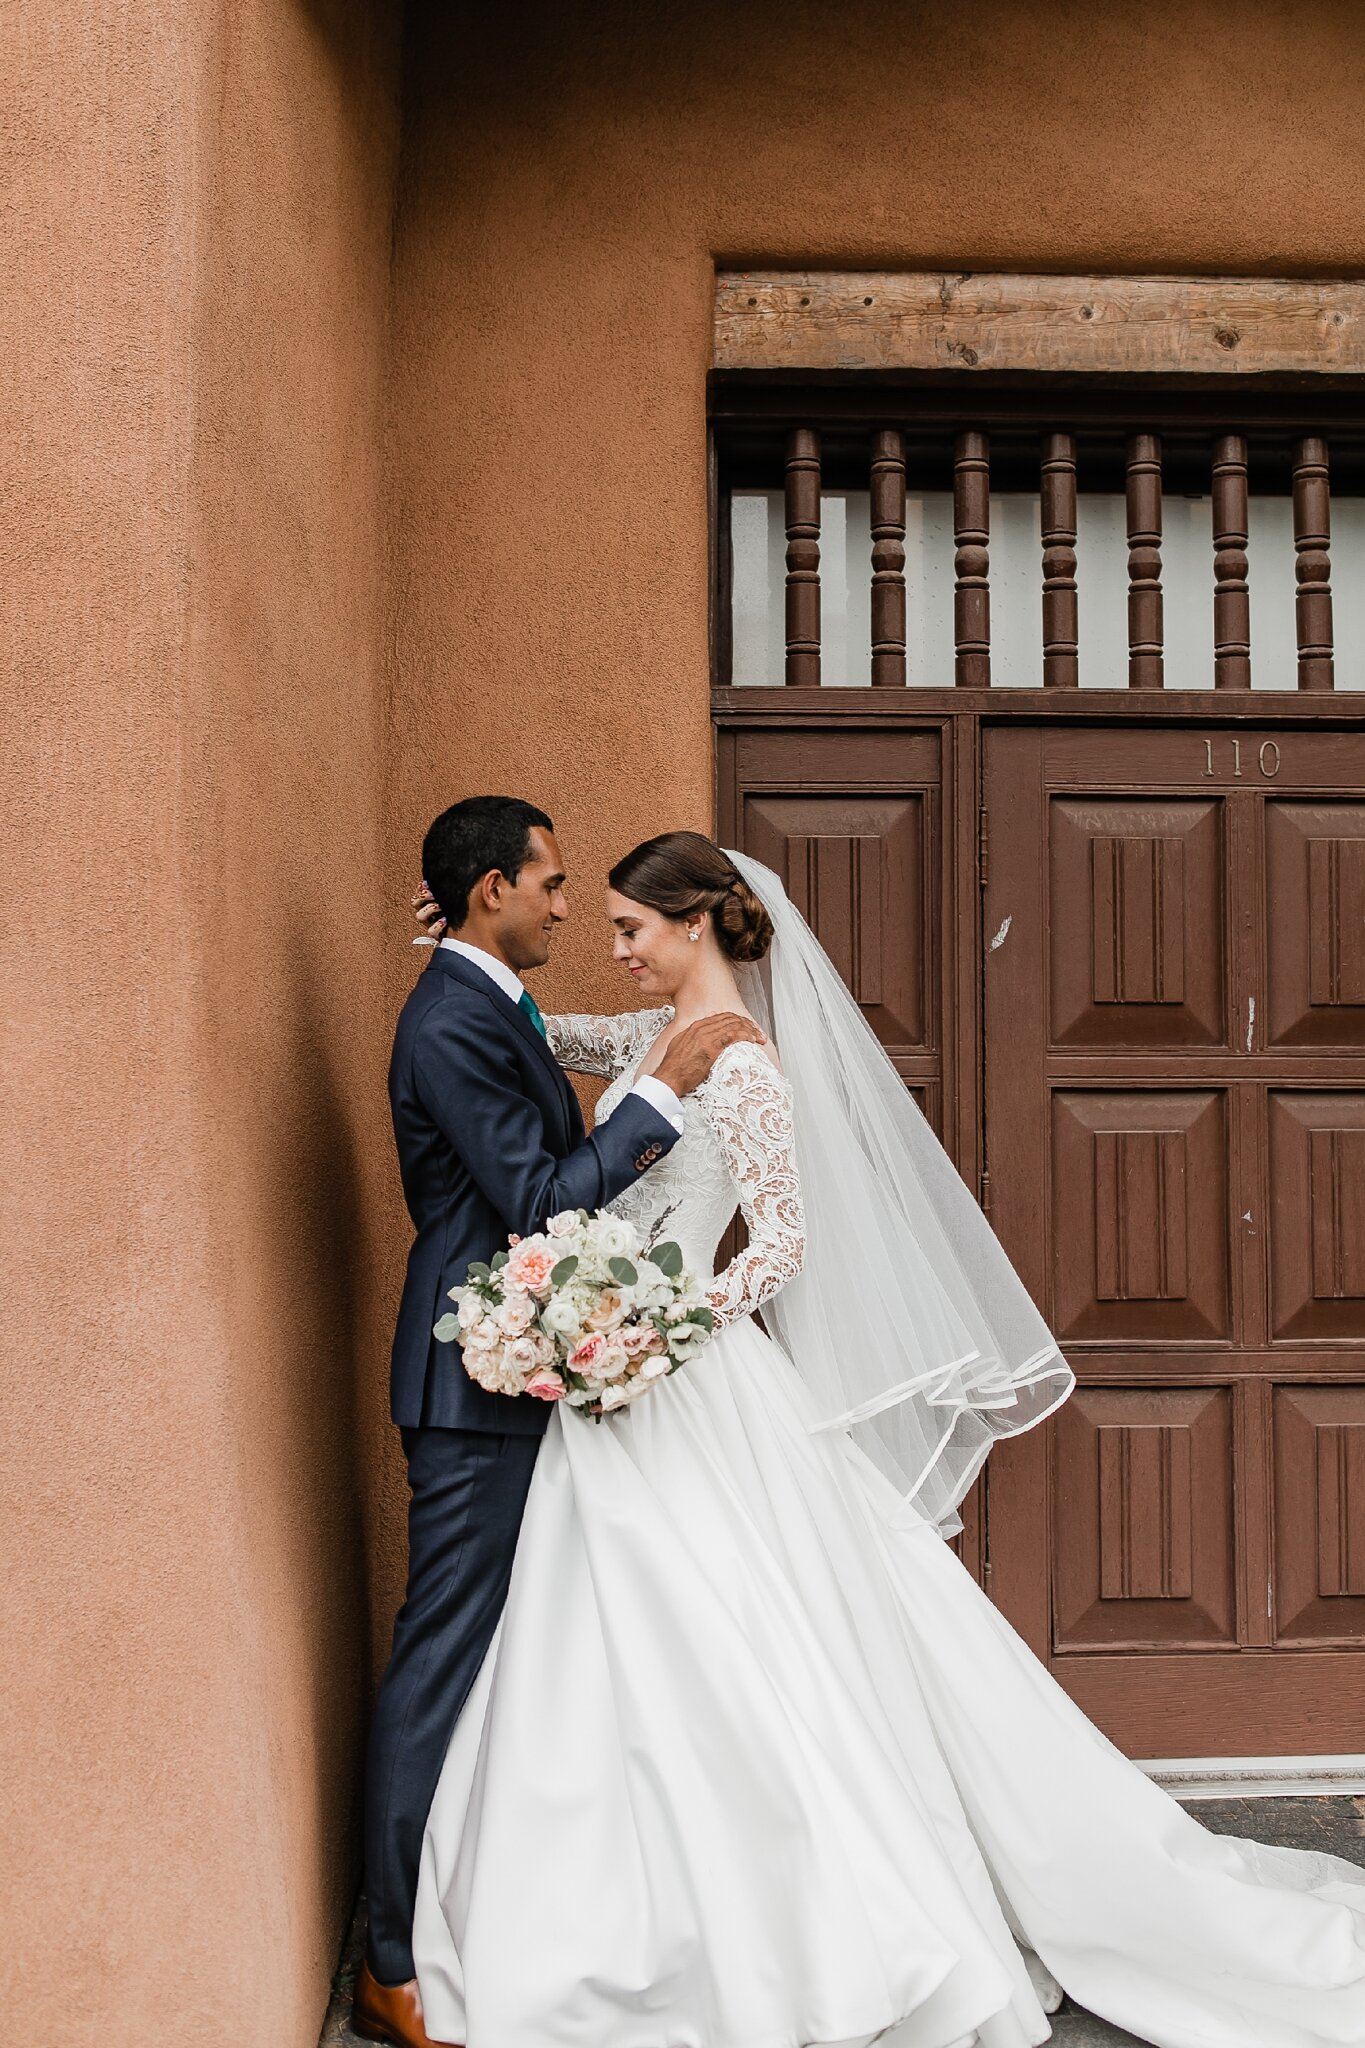 Alicia+lucia+photography+-+albuquerque+wedding+photographer+-+santa+fe+wedding+photography+-+new+mexico+wedding+photographer+-+new+mexico+wedding+-+hindu+wedding+-+catholic+wedding+-+multicultural+wedding+-+santa+fe+wedding_0081.jpg